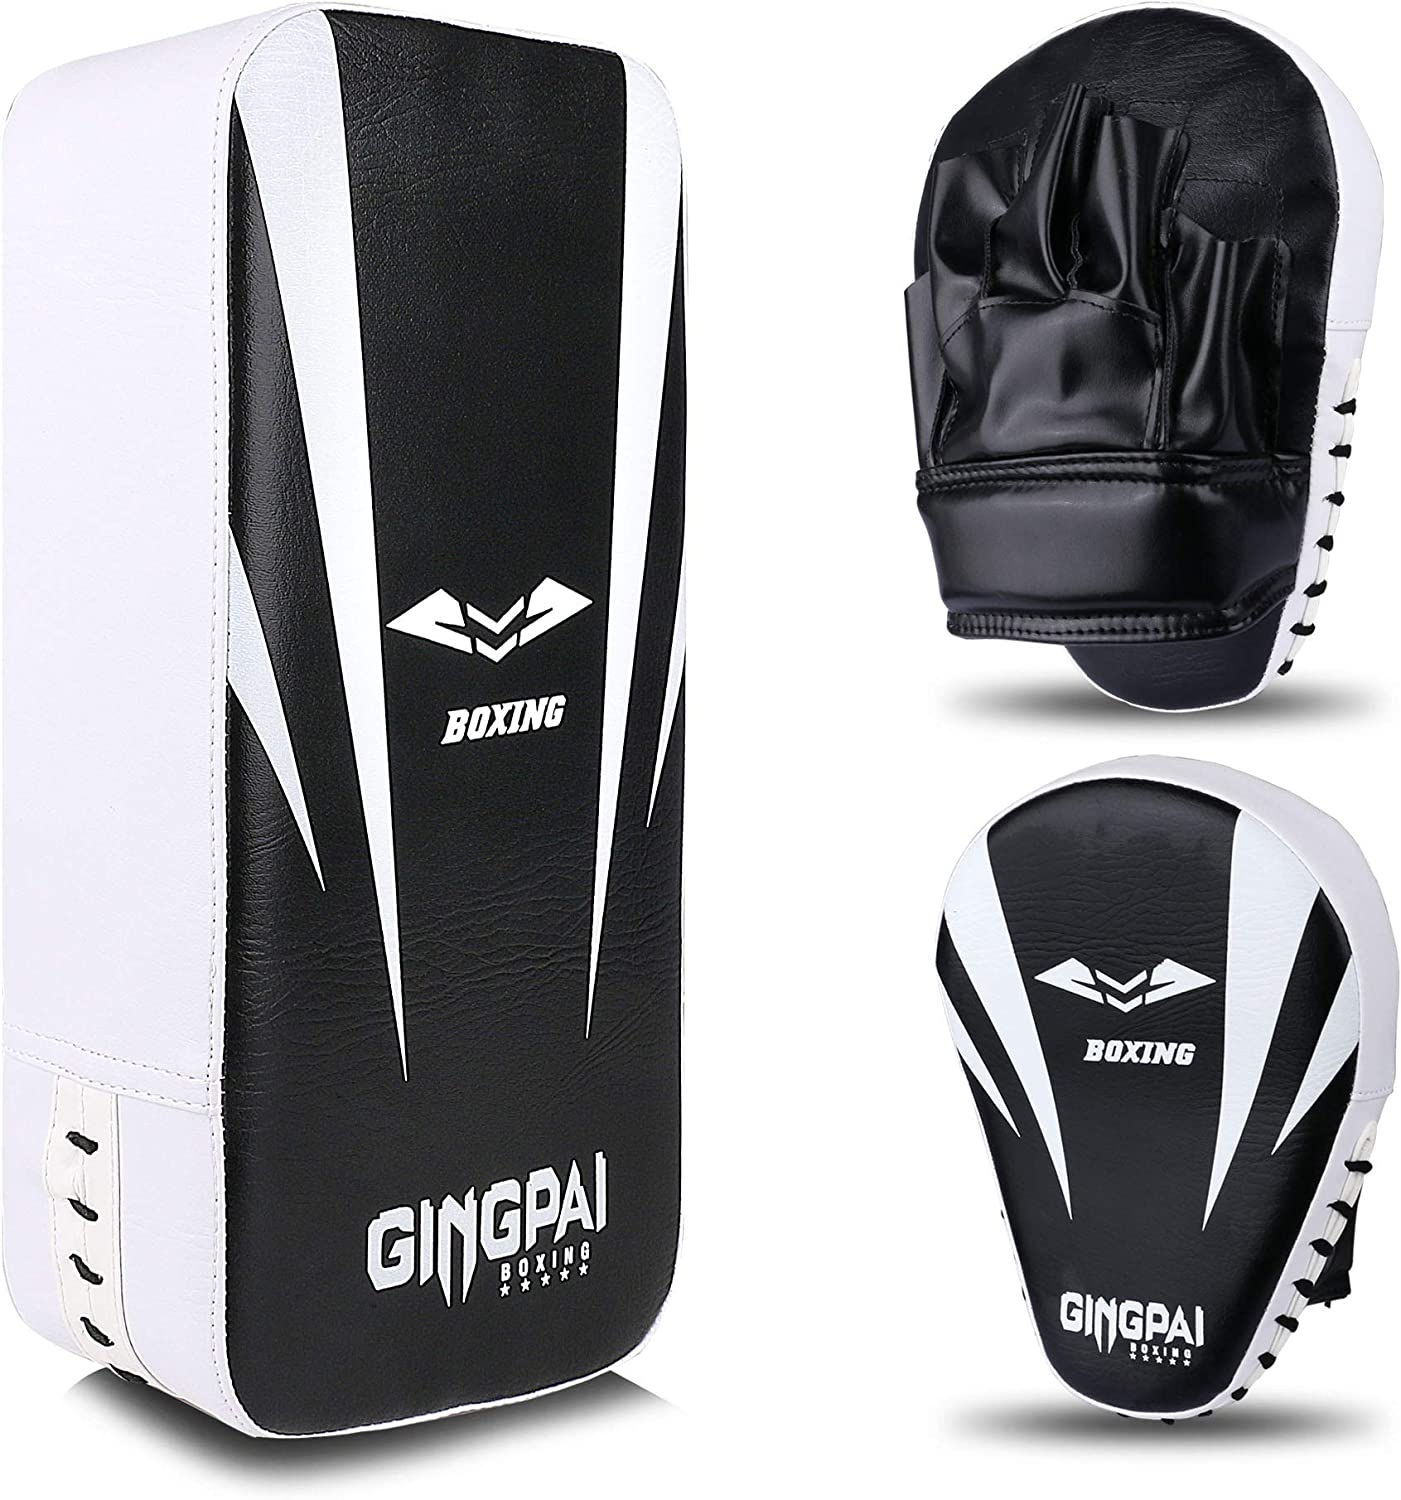 2-in-1 Punching Max 68% OFF Mitts Kick Denver Mall Pack Pads Focus Ta Set Boxing